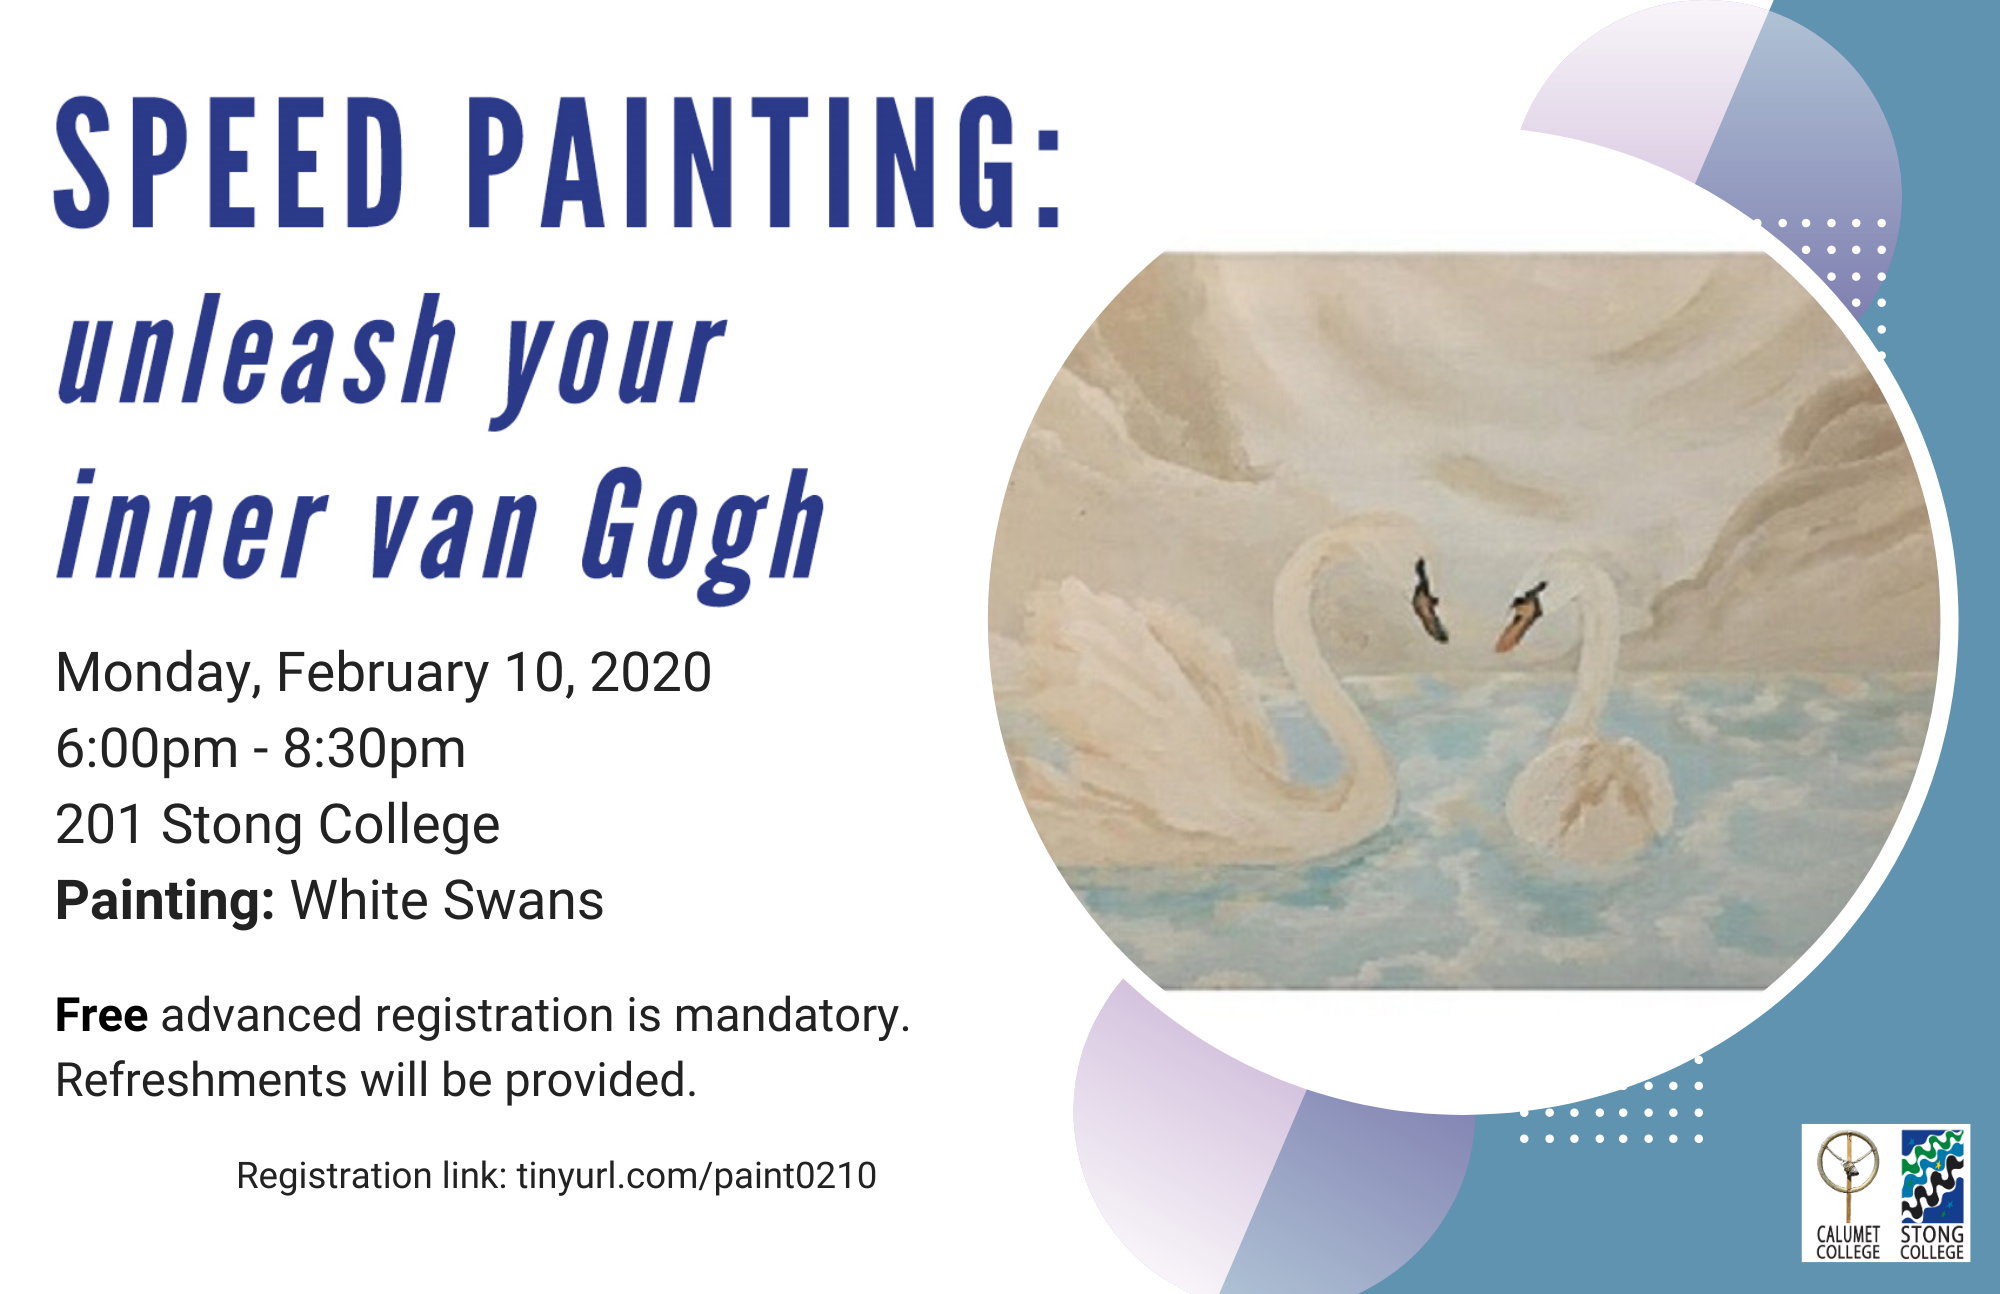 Speed Painting: Valentine's Day Painting @ Stong College, Room 201